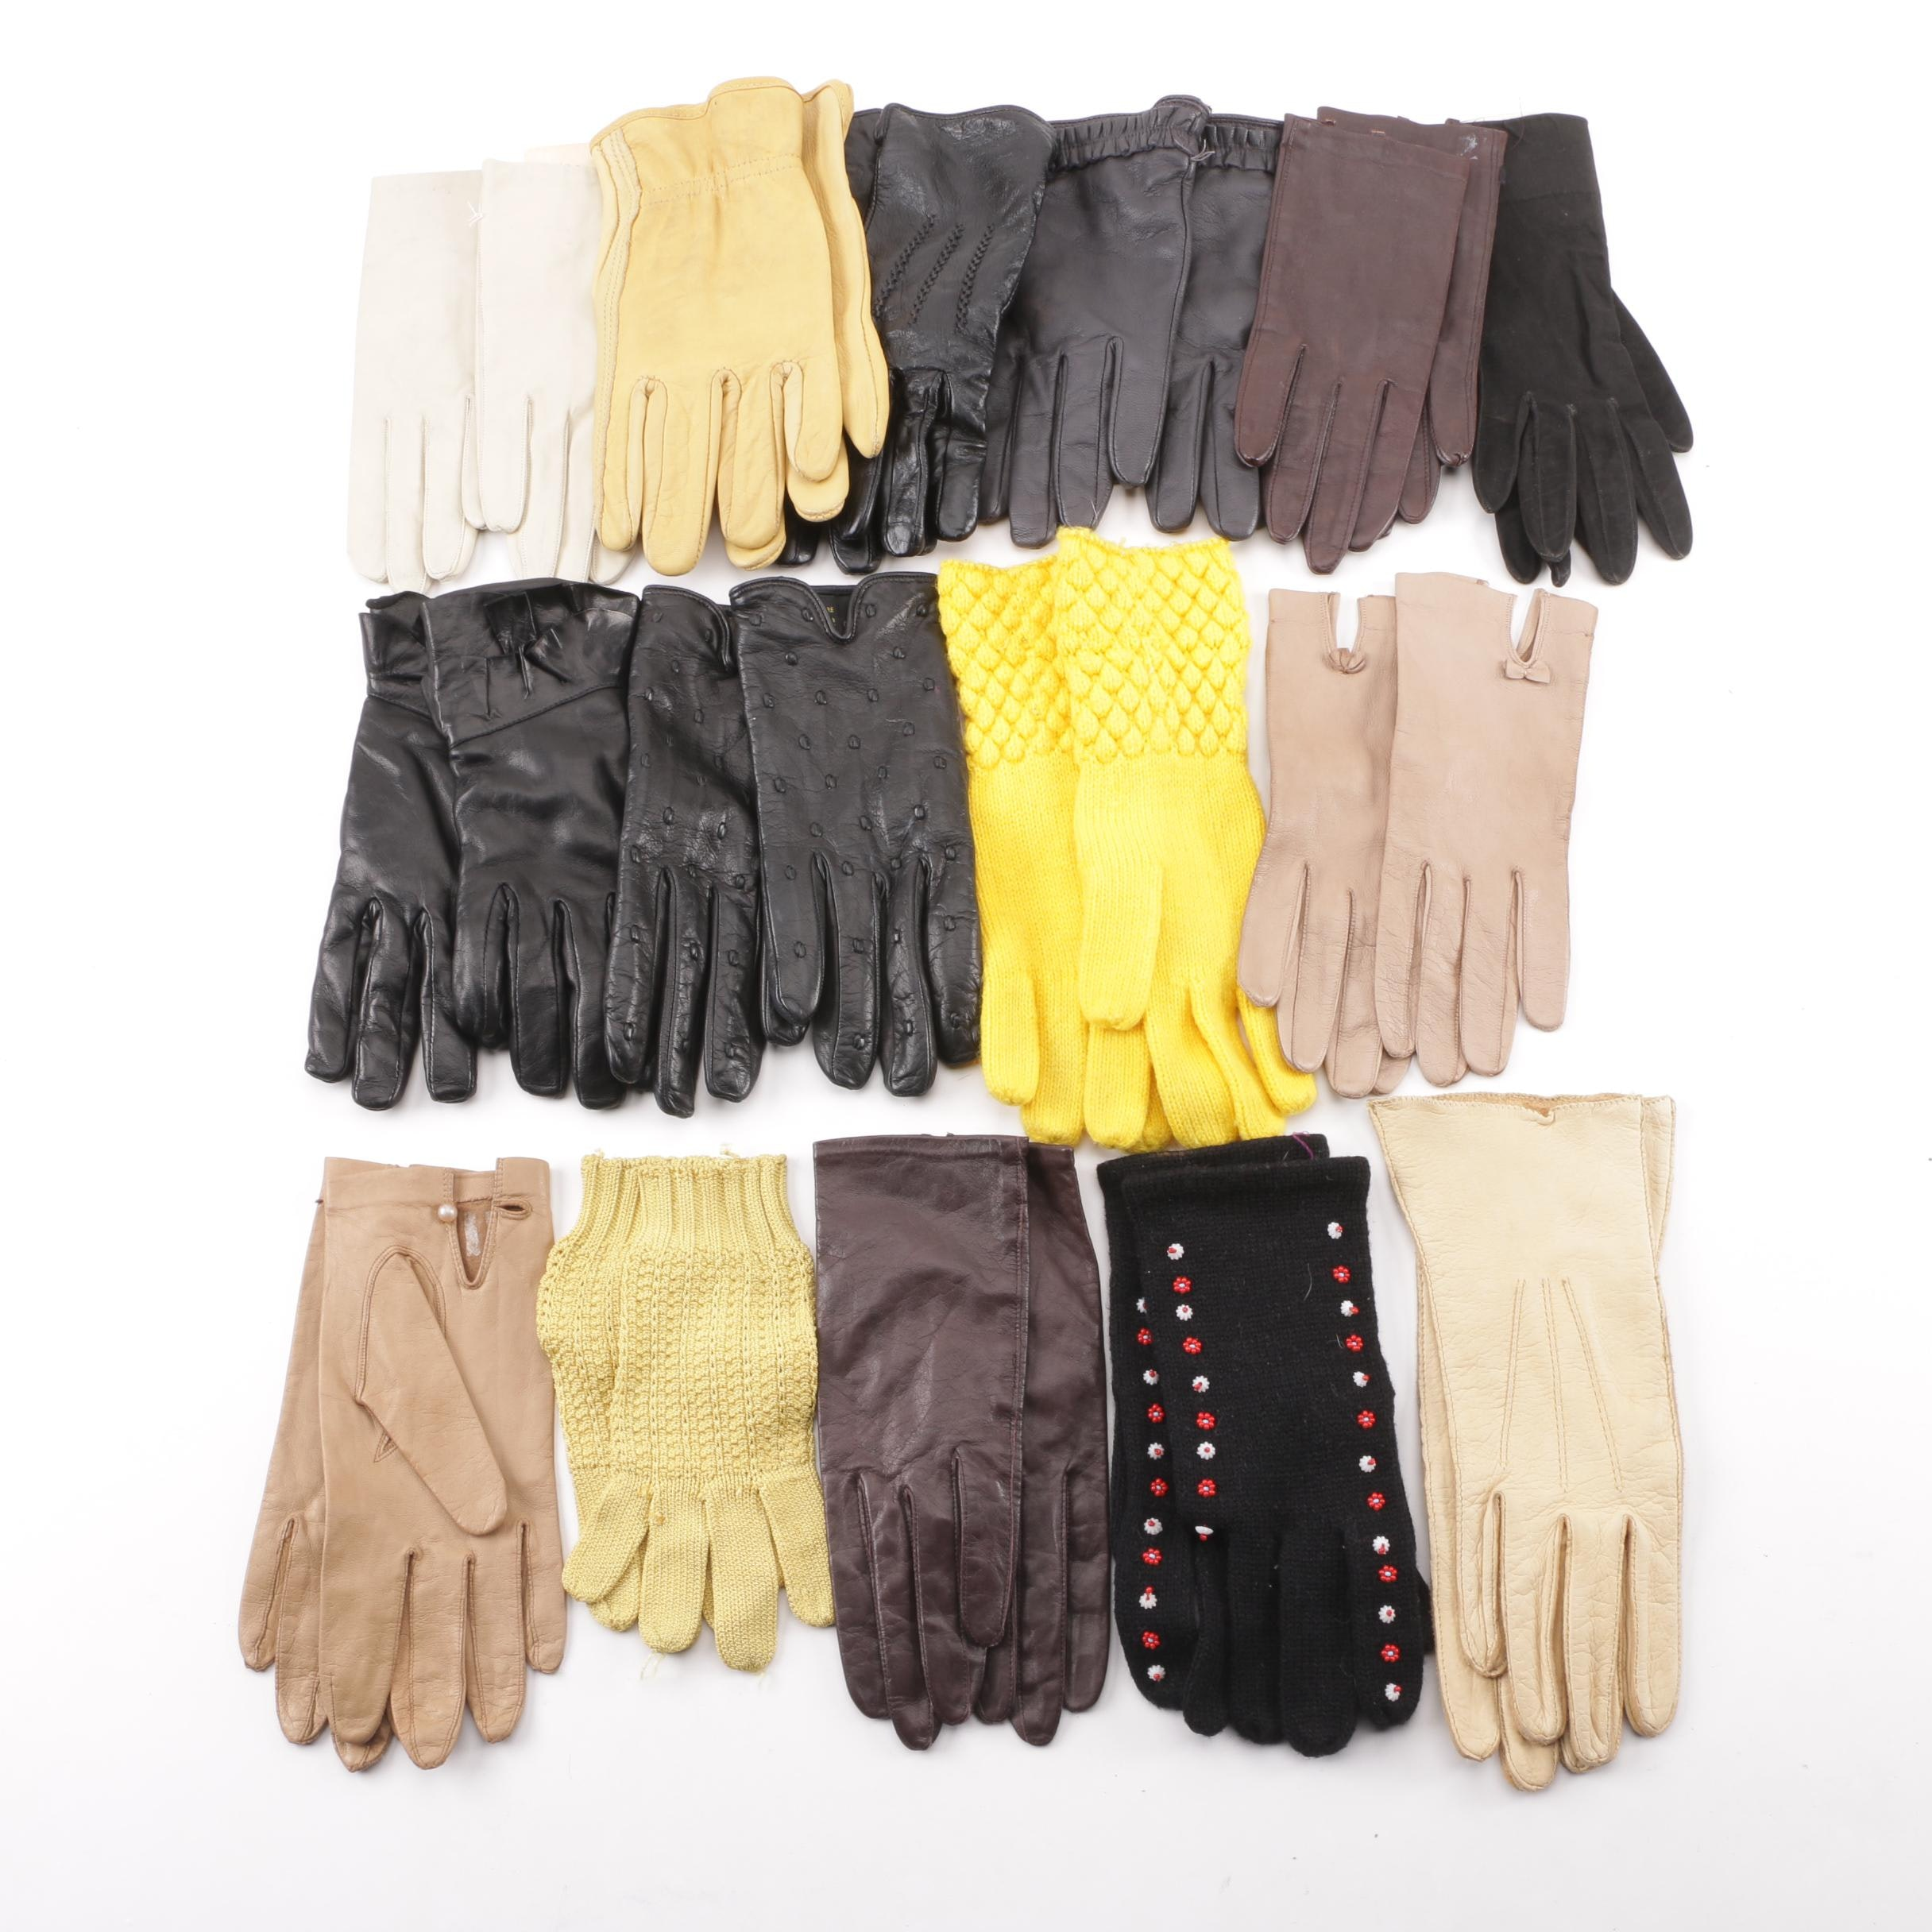 Women's Leather, Wool and Beaded Gloves including Cashmere Lined